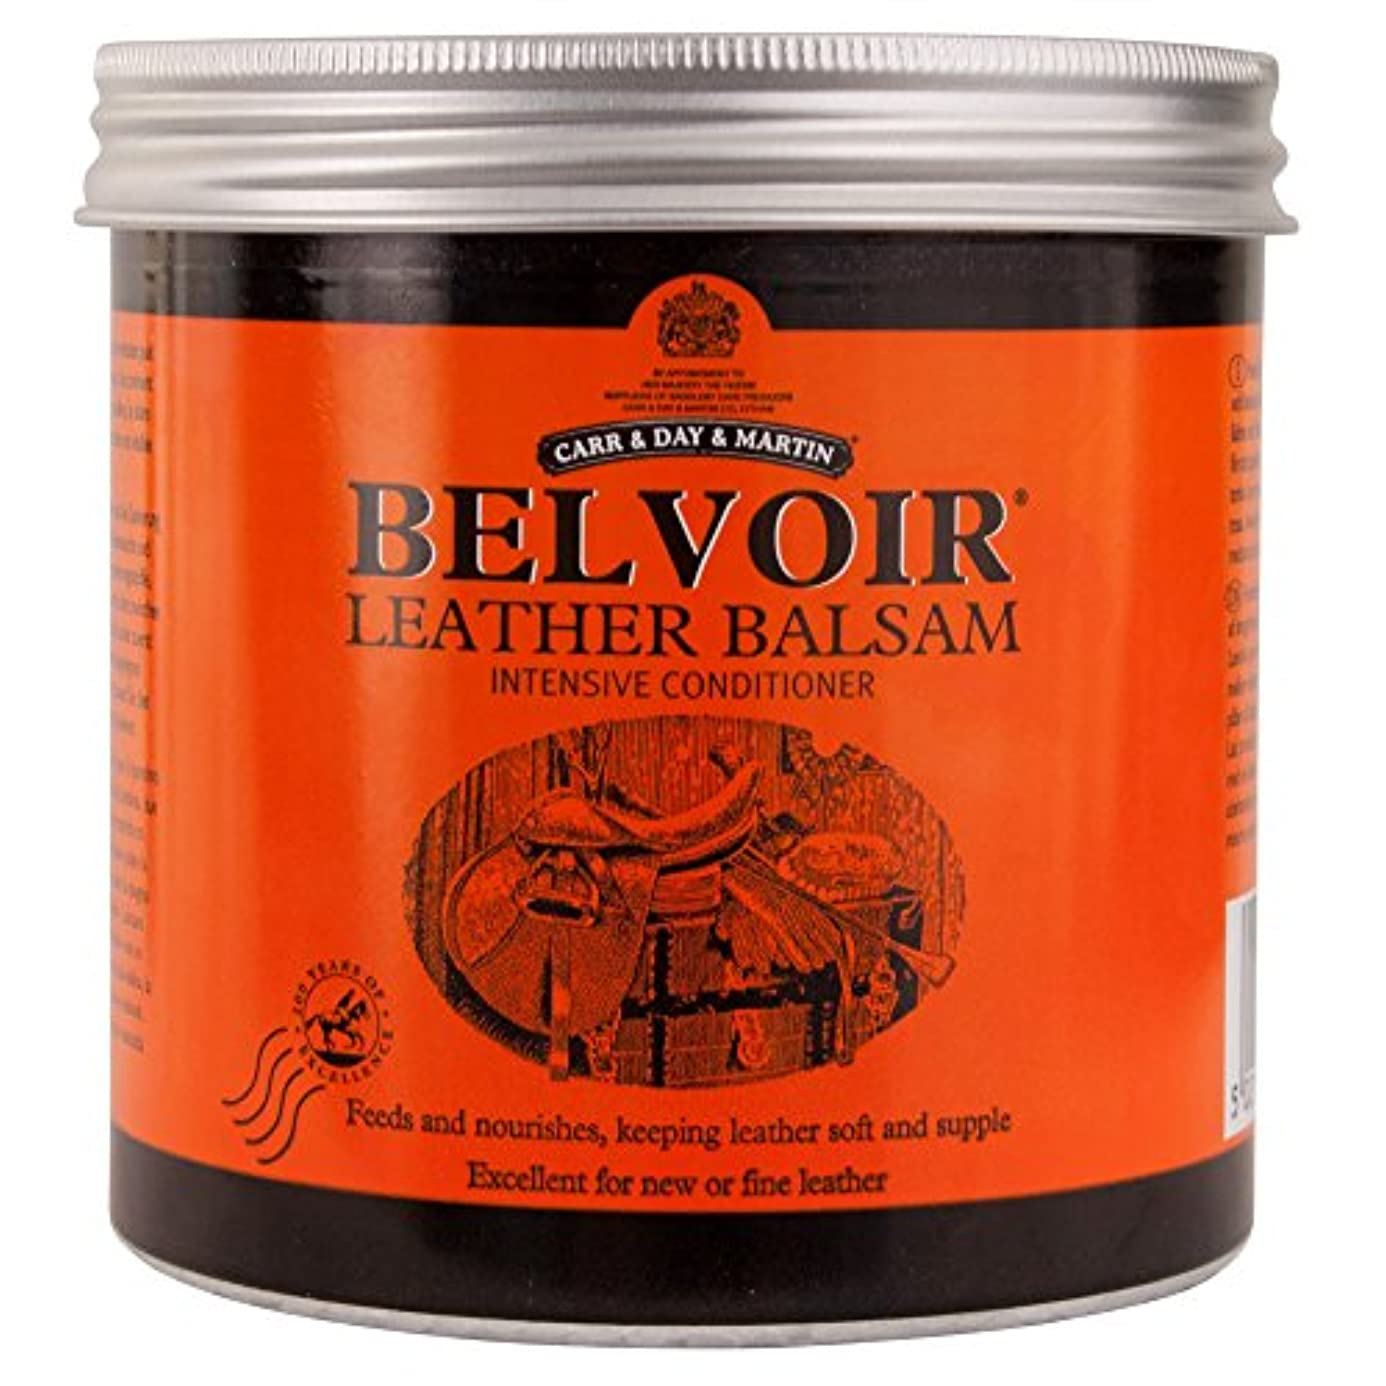 同僚しゃがむピボットCarr And Day And Martin Belvoir Leather Balsam Intensive Conditioner - Orange,